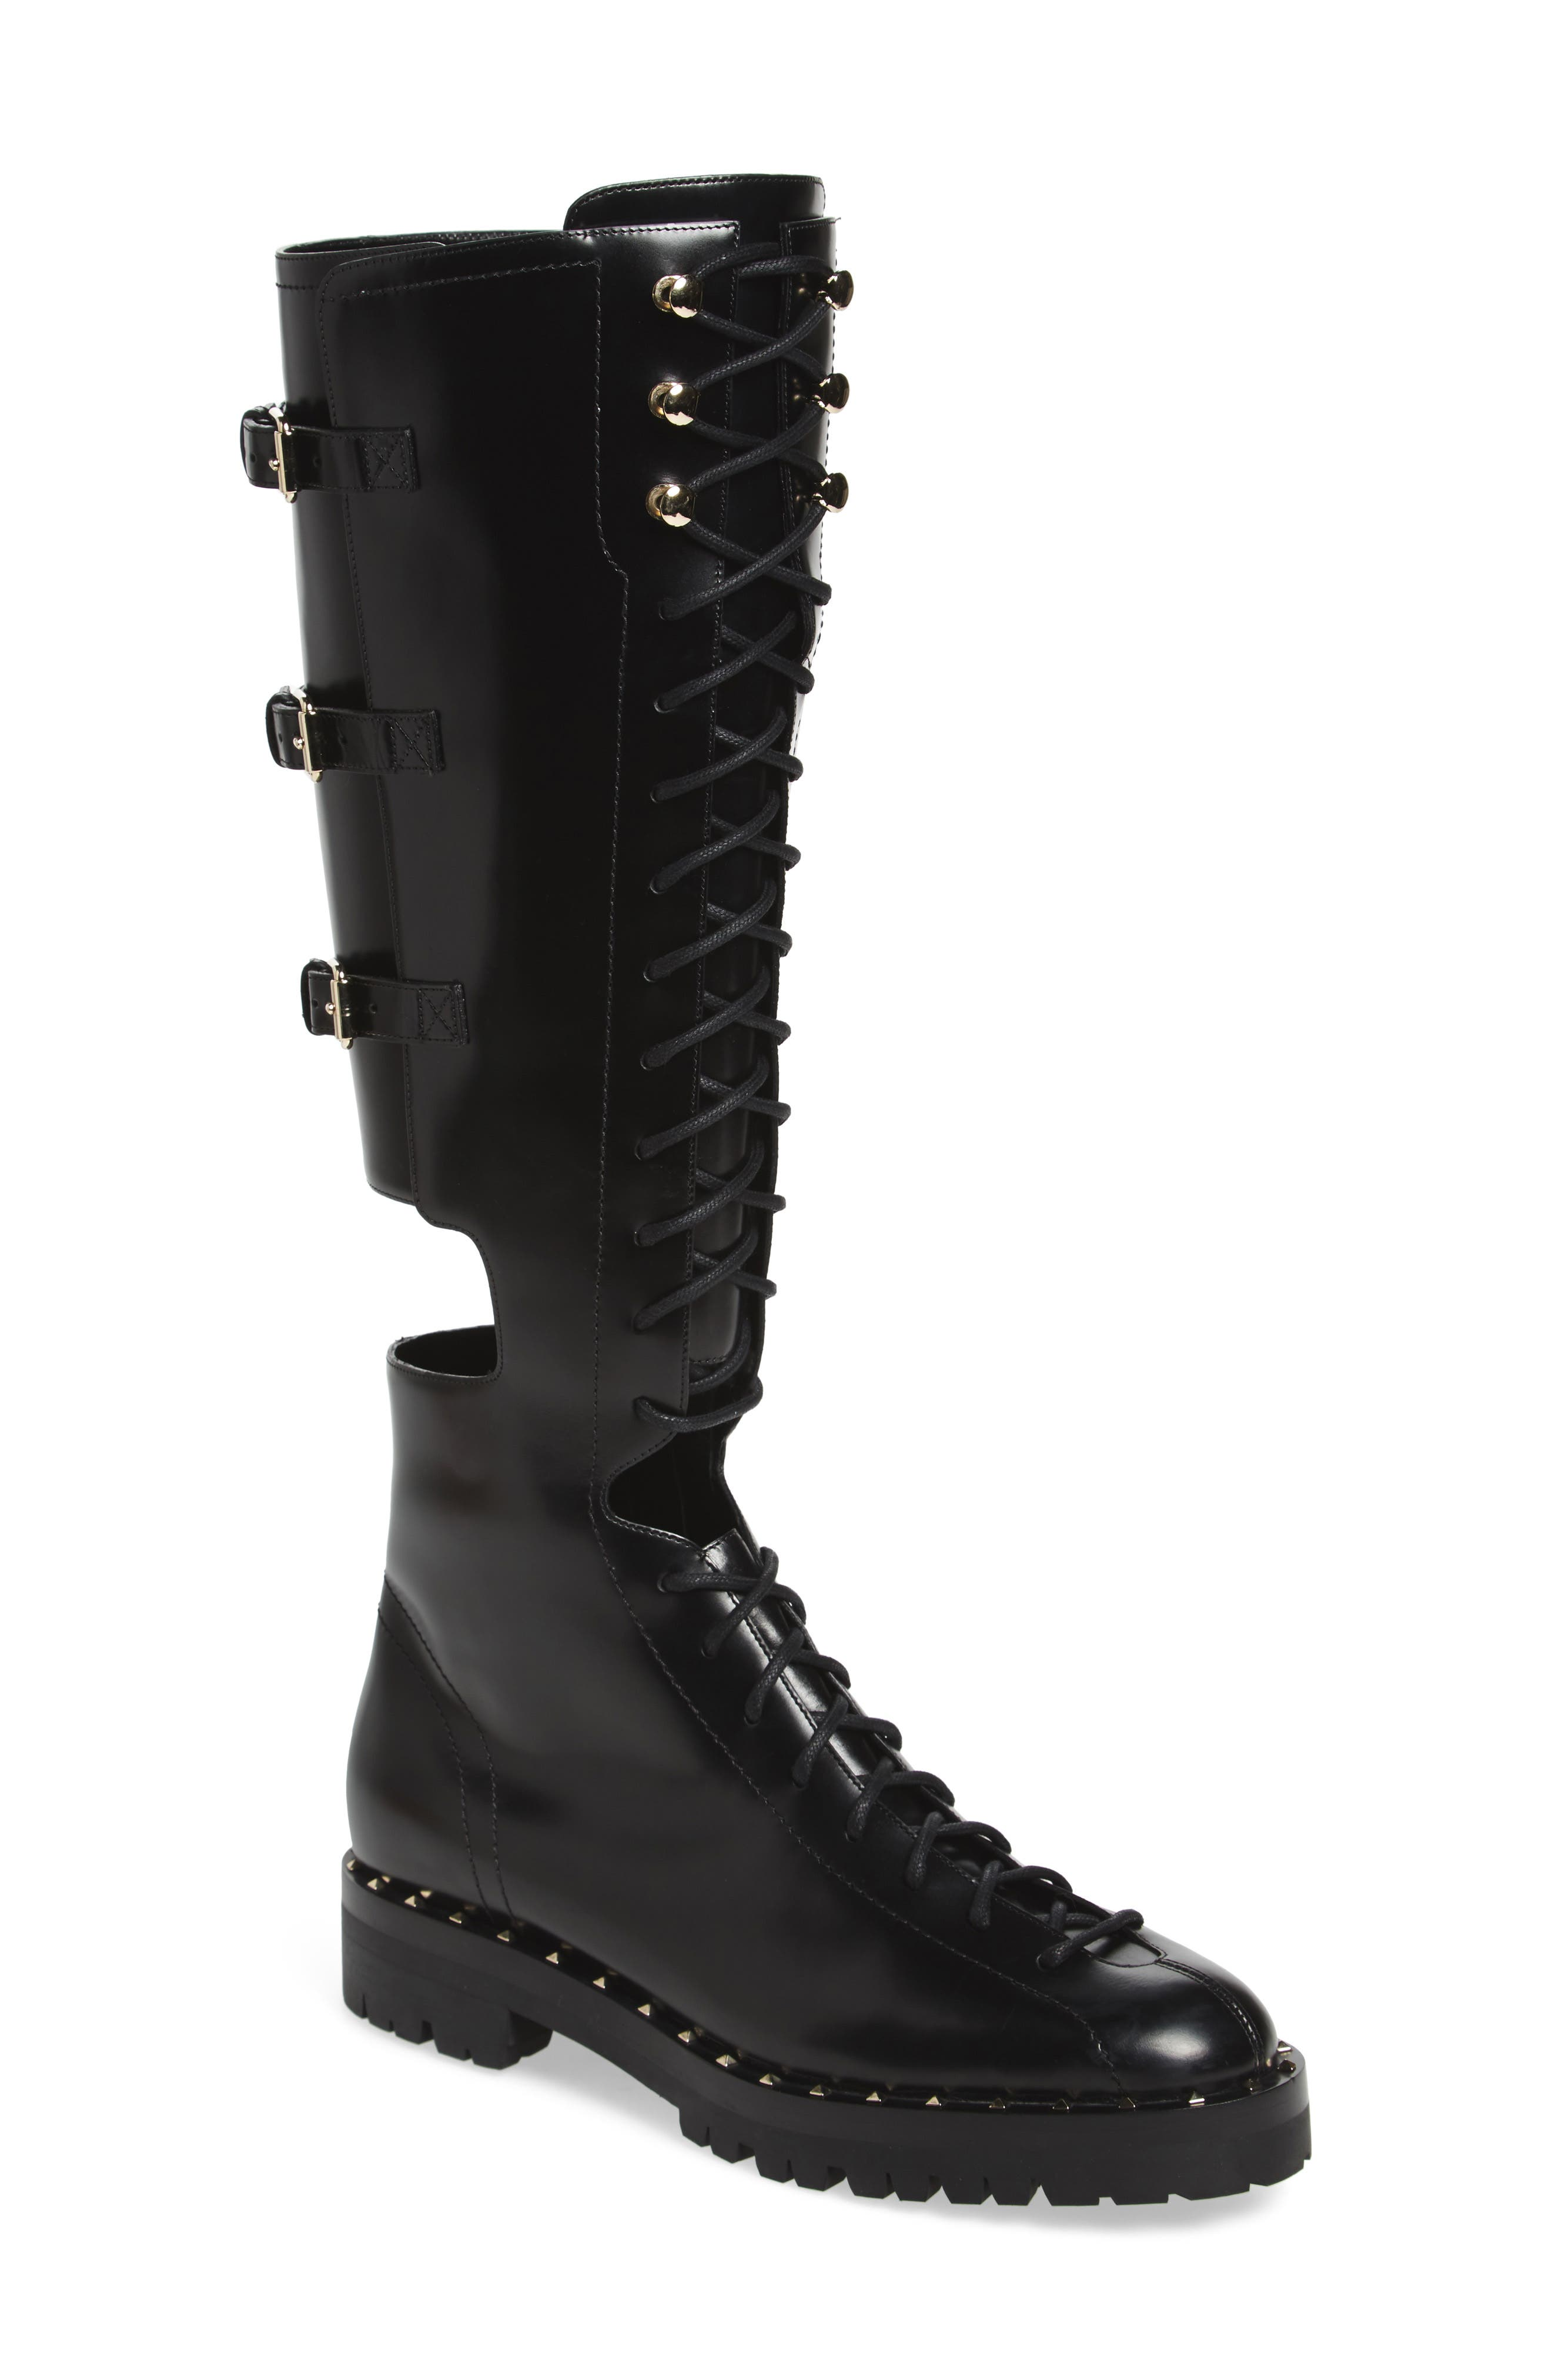 Main Image - VALENTINO GARAVANI Soul Rockstud Knee High Cutout Boot (Women)